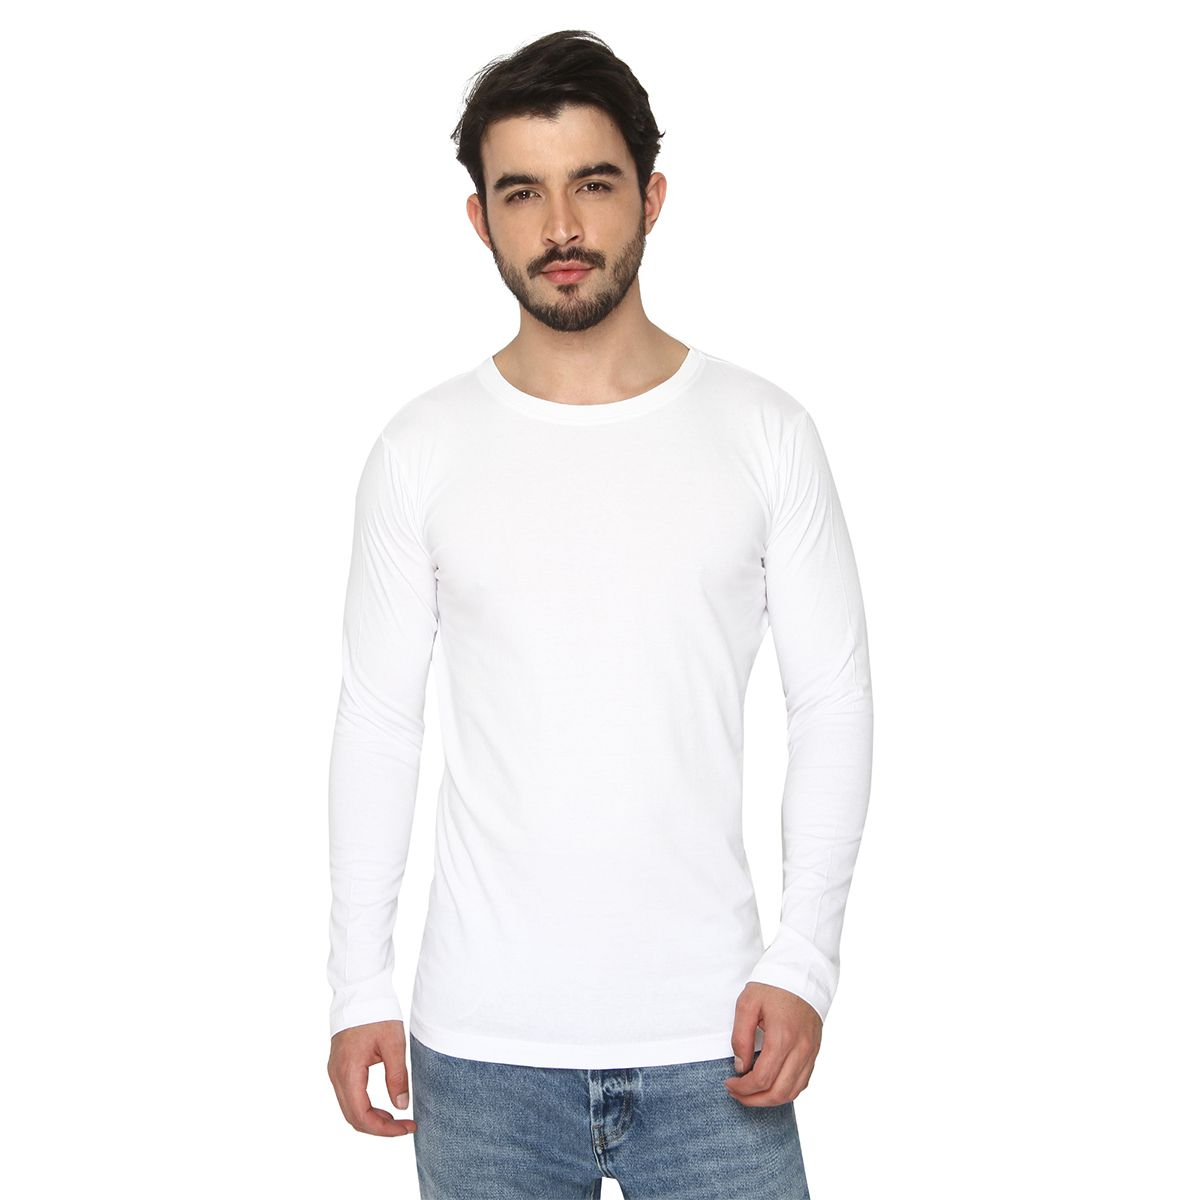 Foryou White Boat T-Shirt